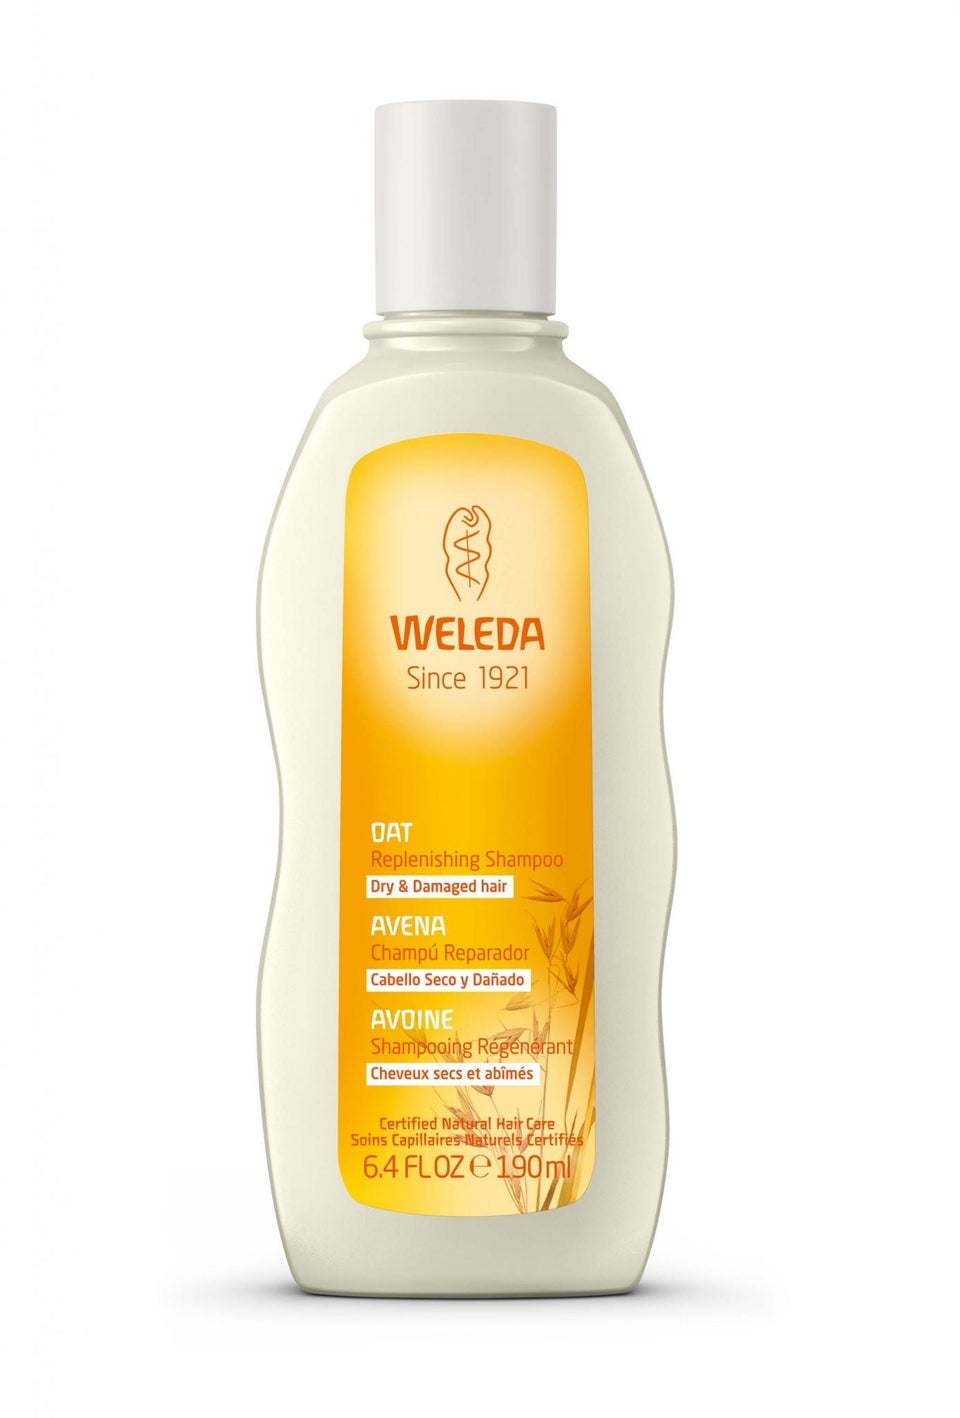 Products We Love: Sulfate-Free Shampoos and Conditioners